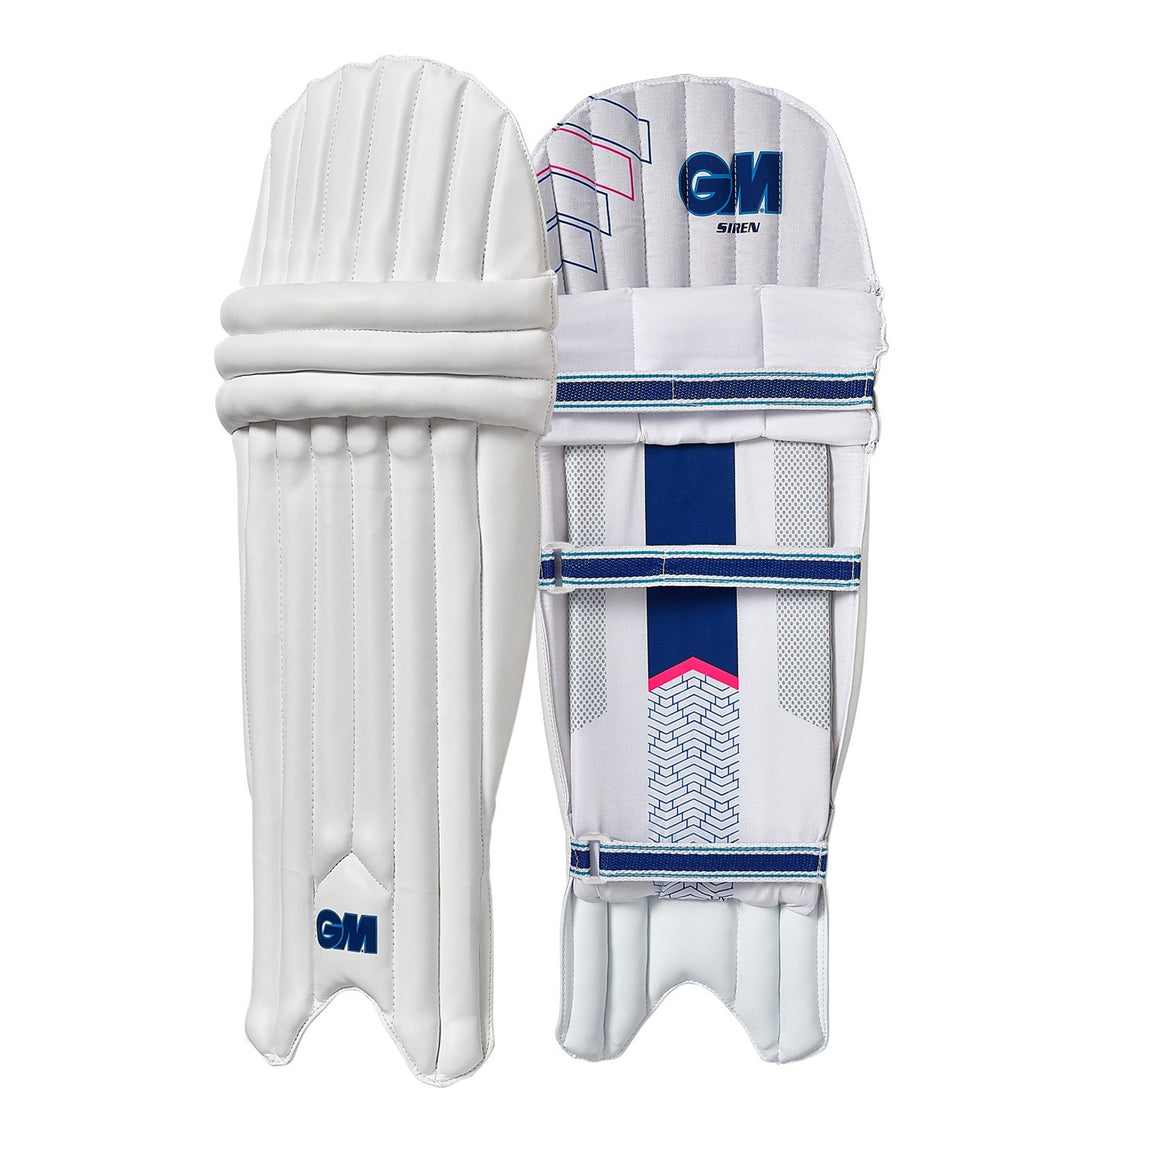 Siren Ambi Batting Pads for Kids in White